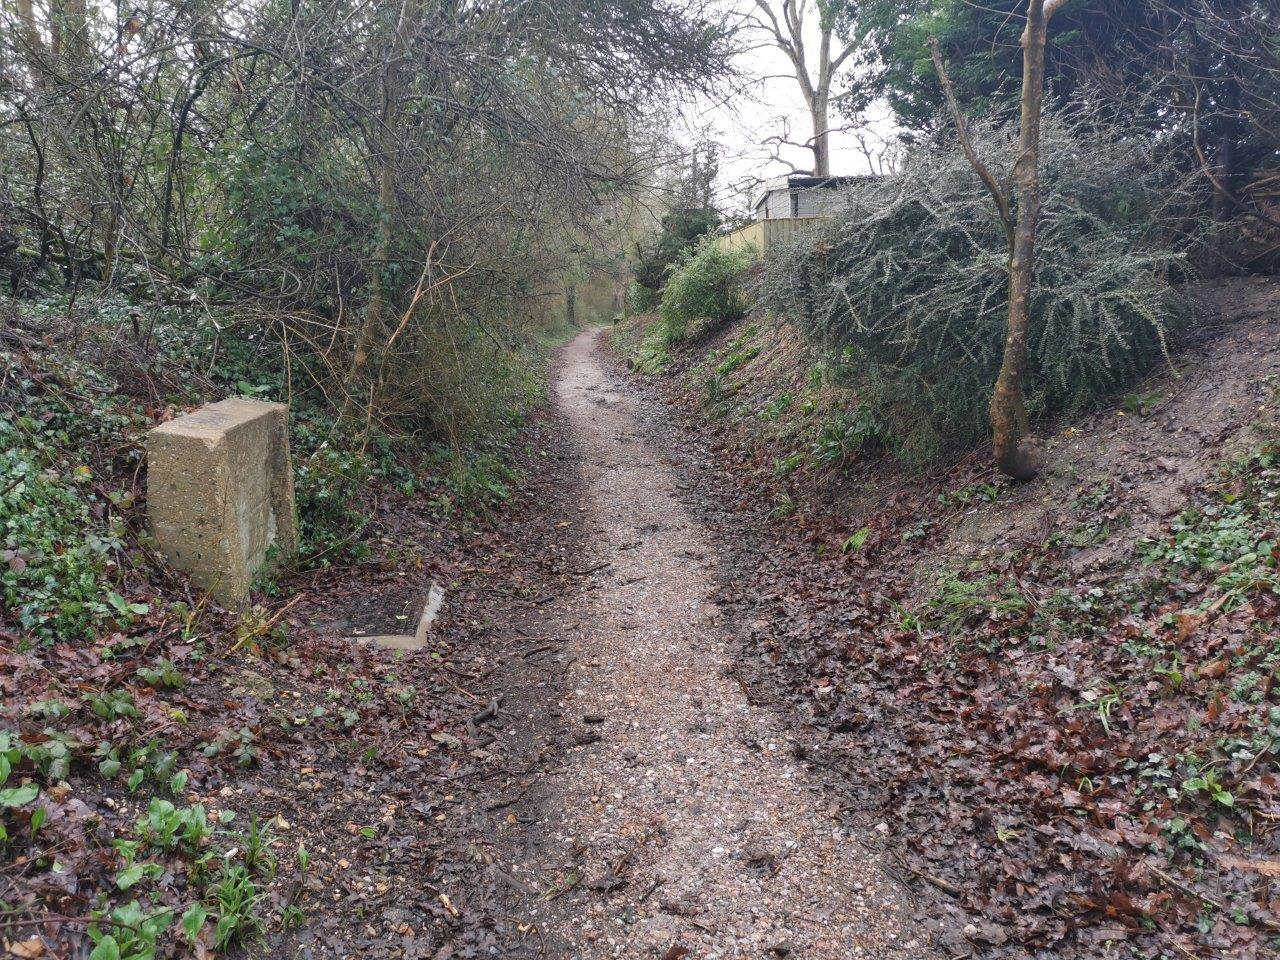 narrow roughly surfaced cycle track bordered by hedges and trees